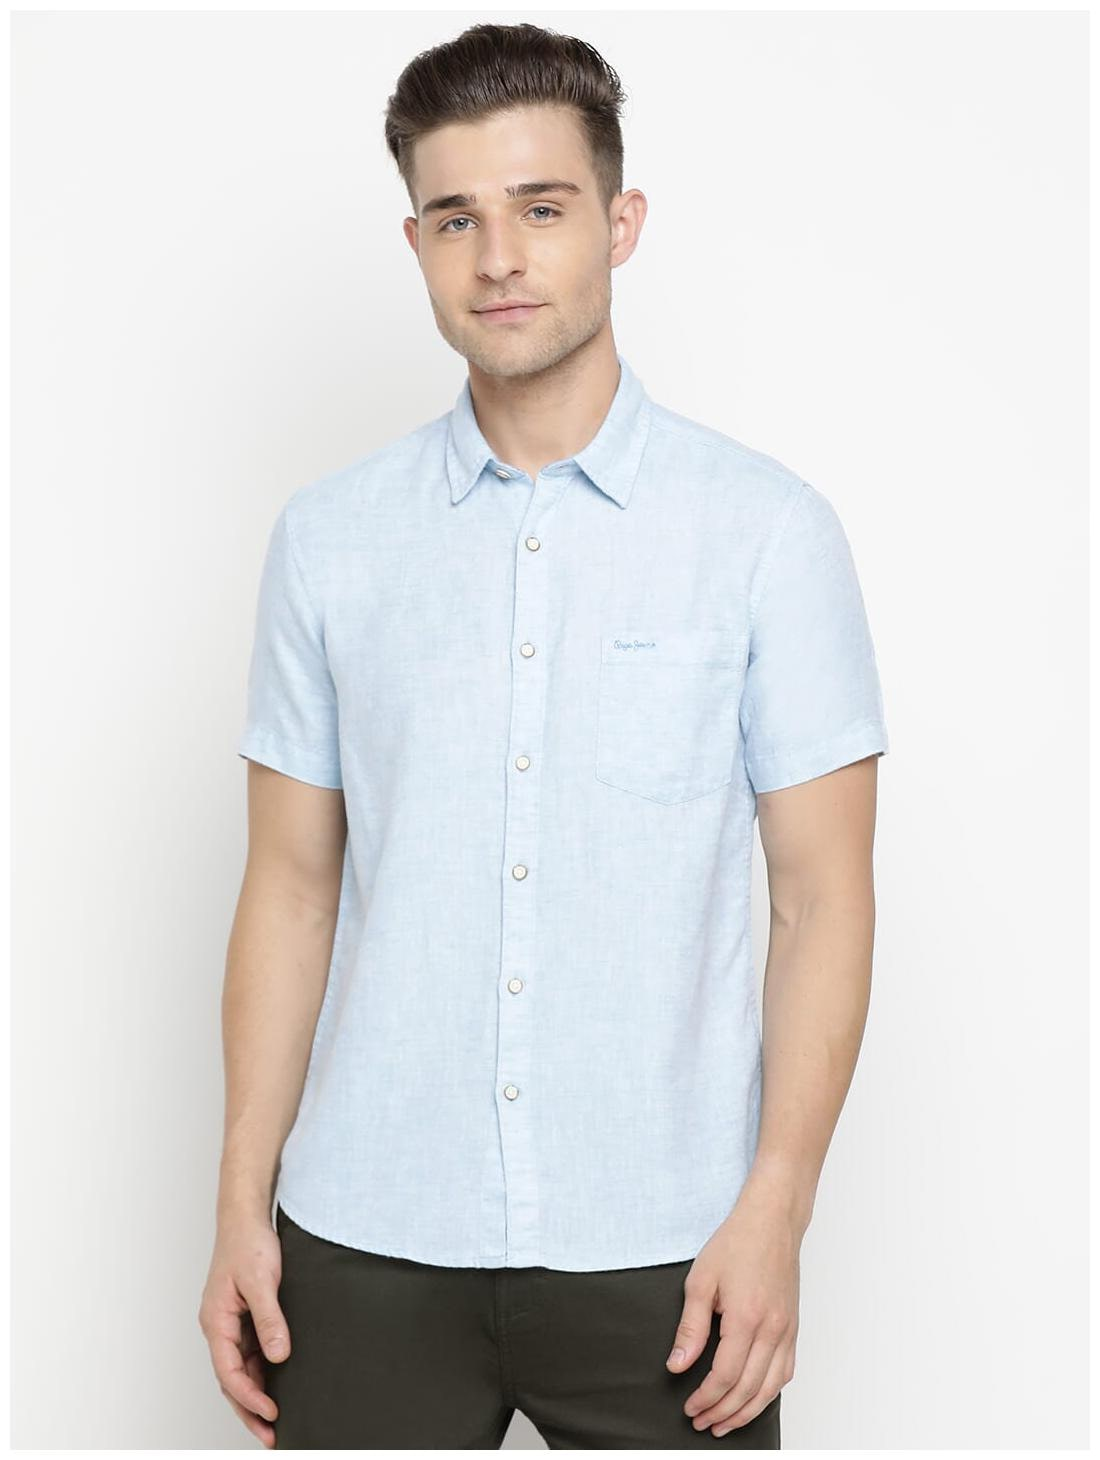 https://assetscdn1.paytm.com/images/catalog/product/A/AP/APPPEPE-JEANS-MAPAC871638481ADA4F/1592211653440_0..jpg